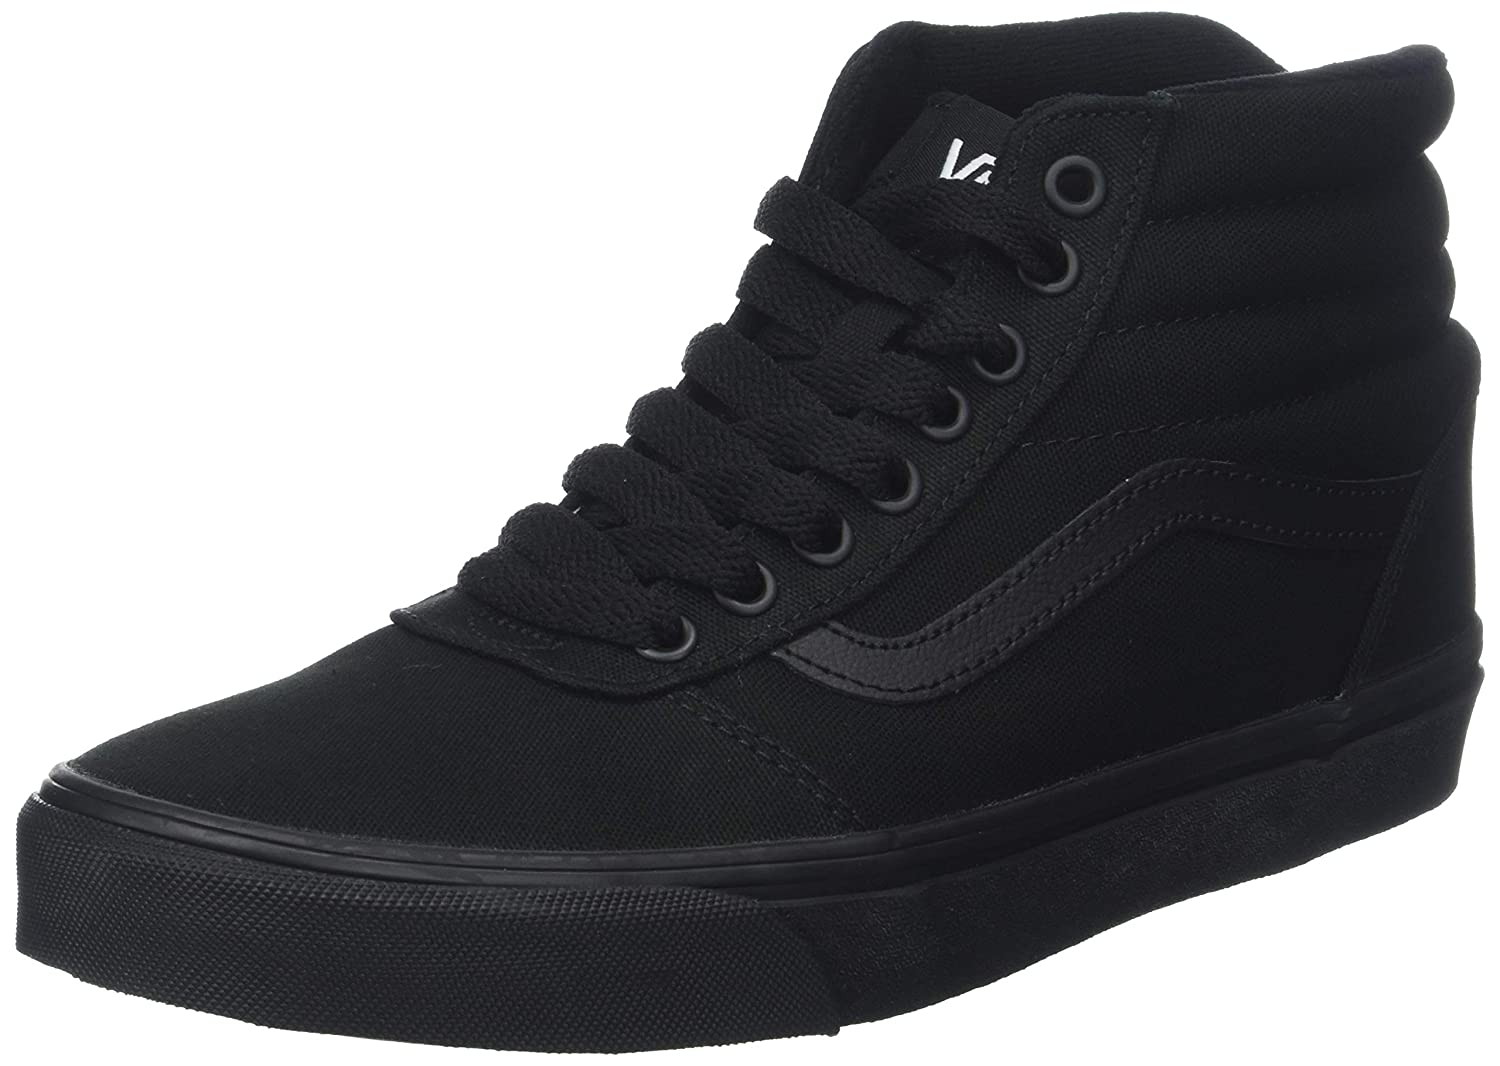 welbekend goed uit x goedkope verkoop Vans Men's Ward Canvas Hi-Top Trainers: Amazon.co.uk: Shoes ...